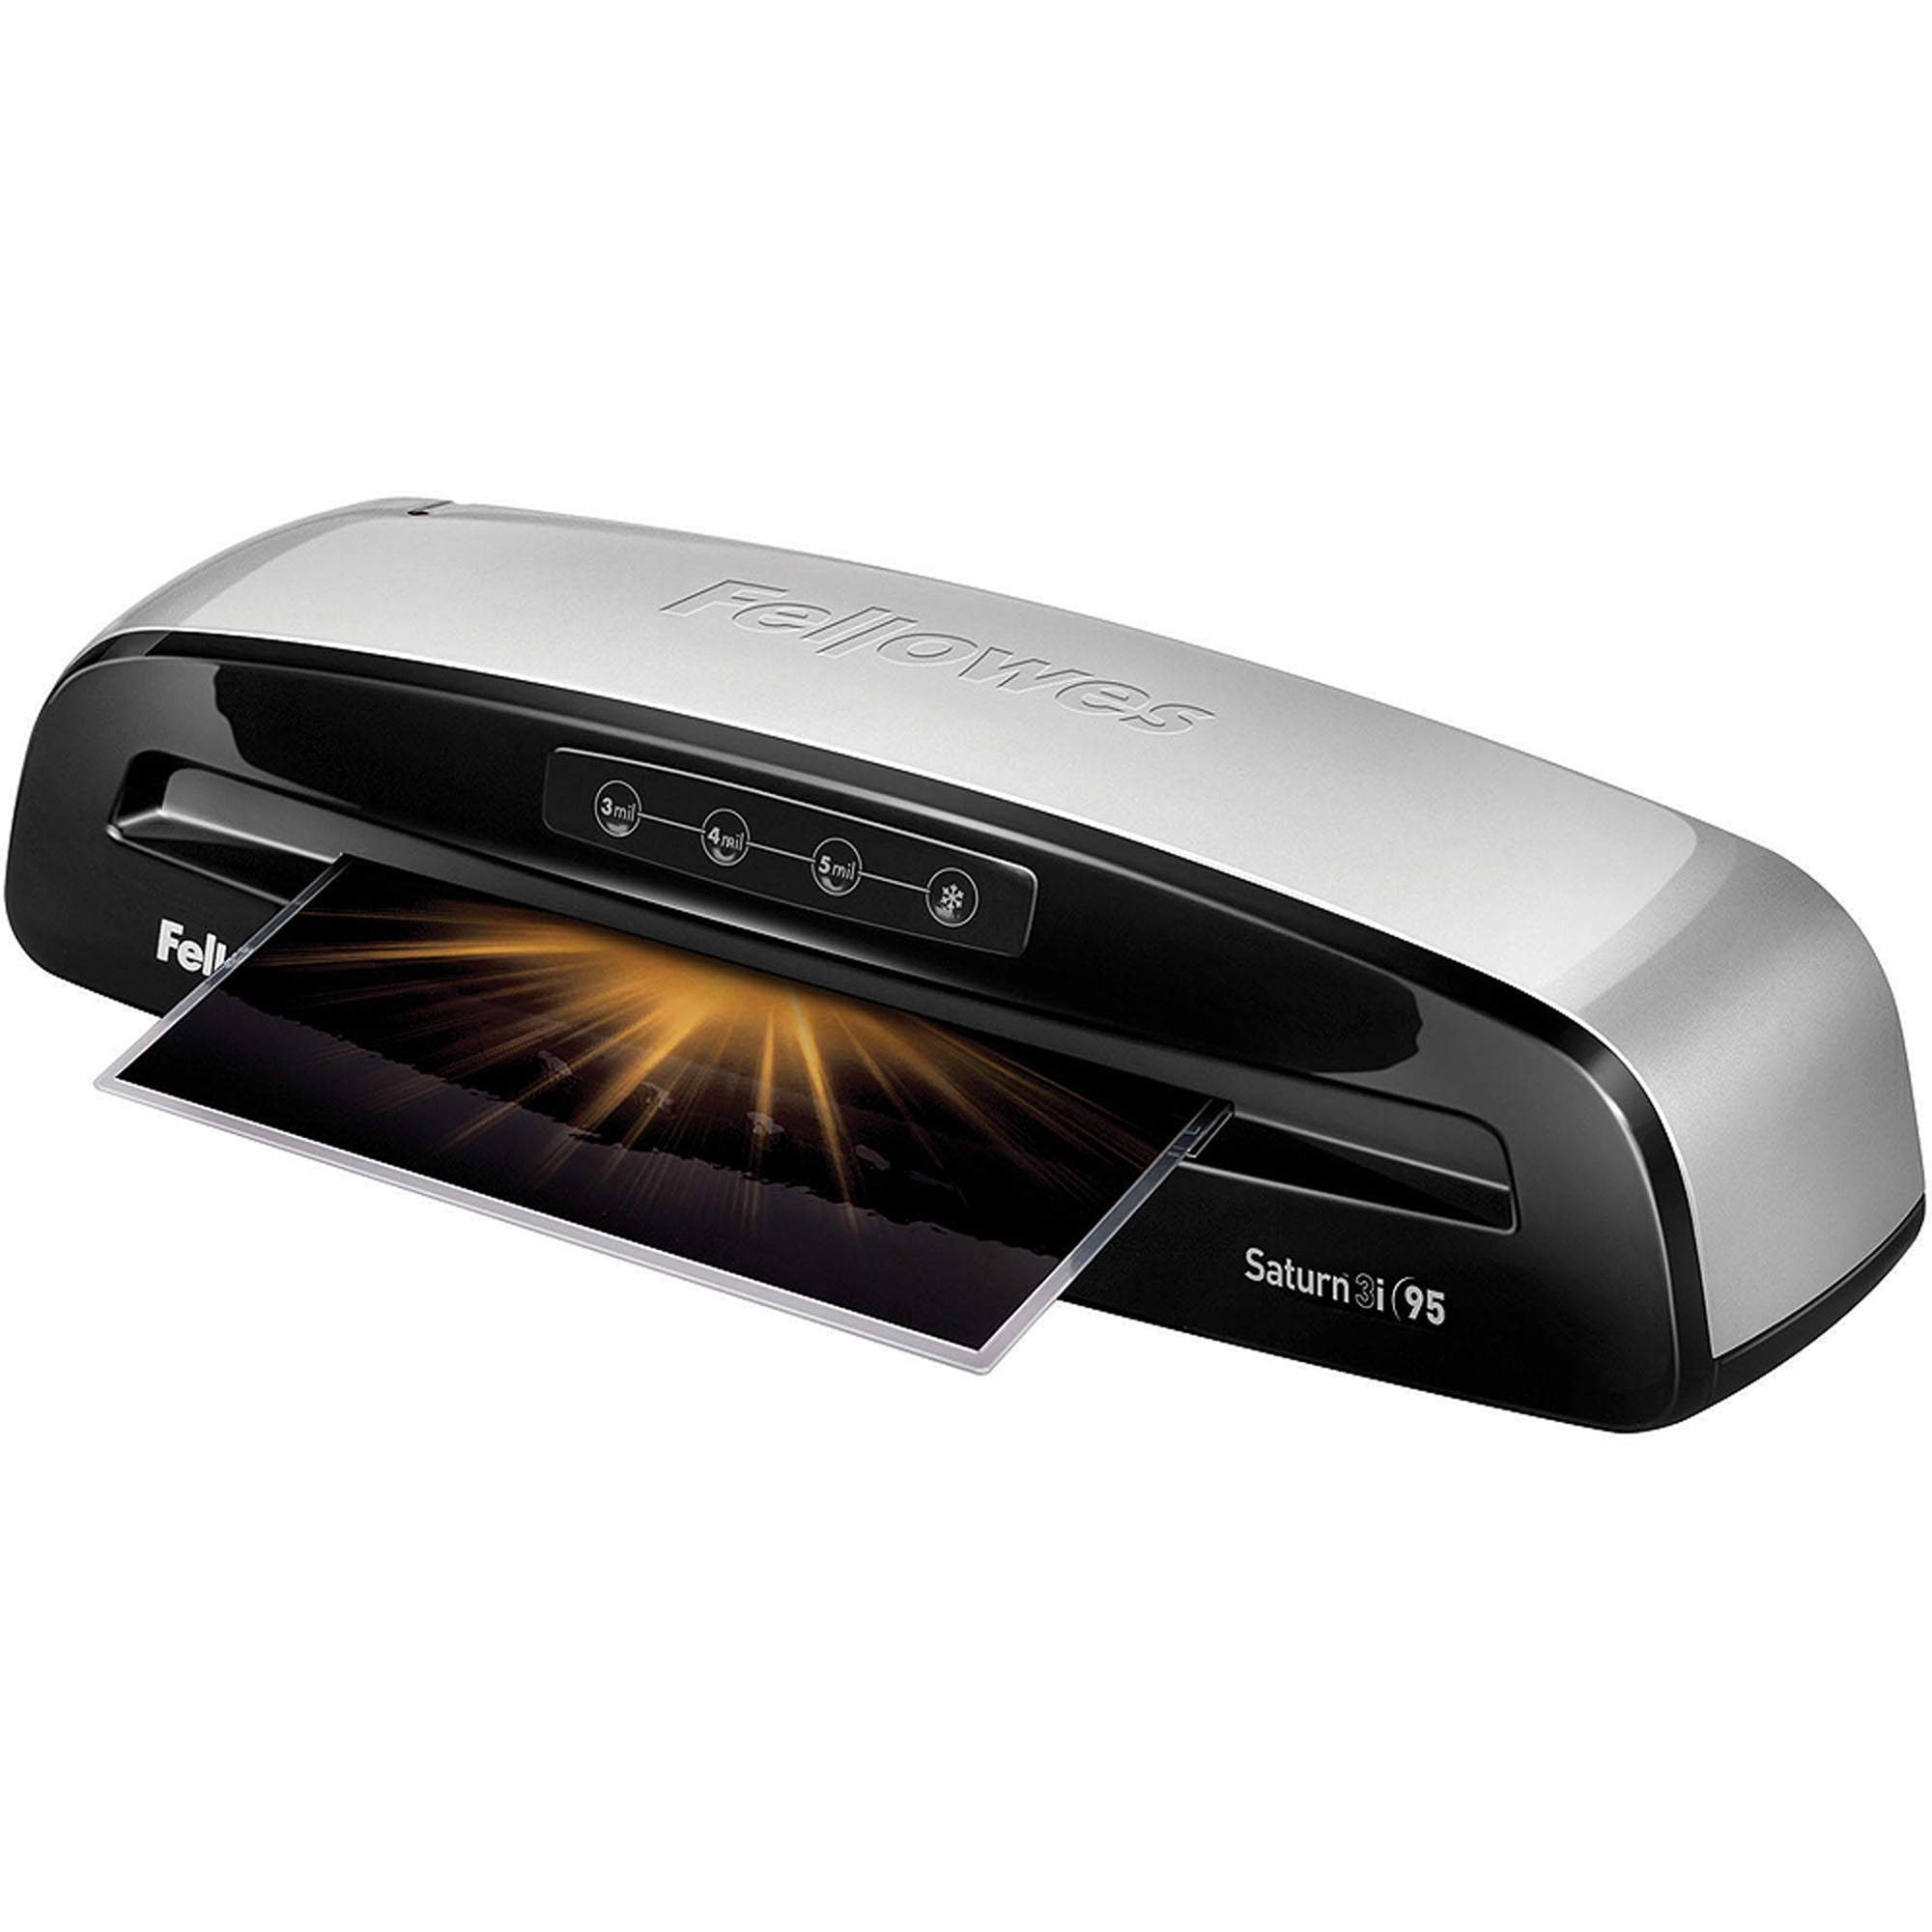 Saturn 3i 95 Laminator with Pouch Starter Kit